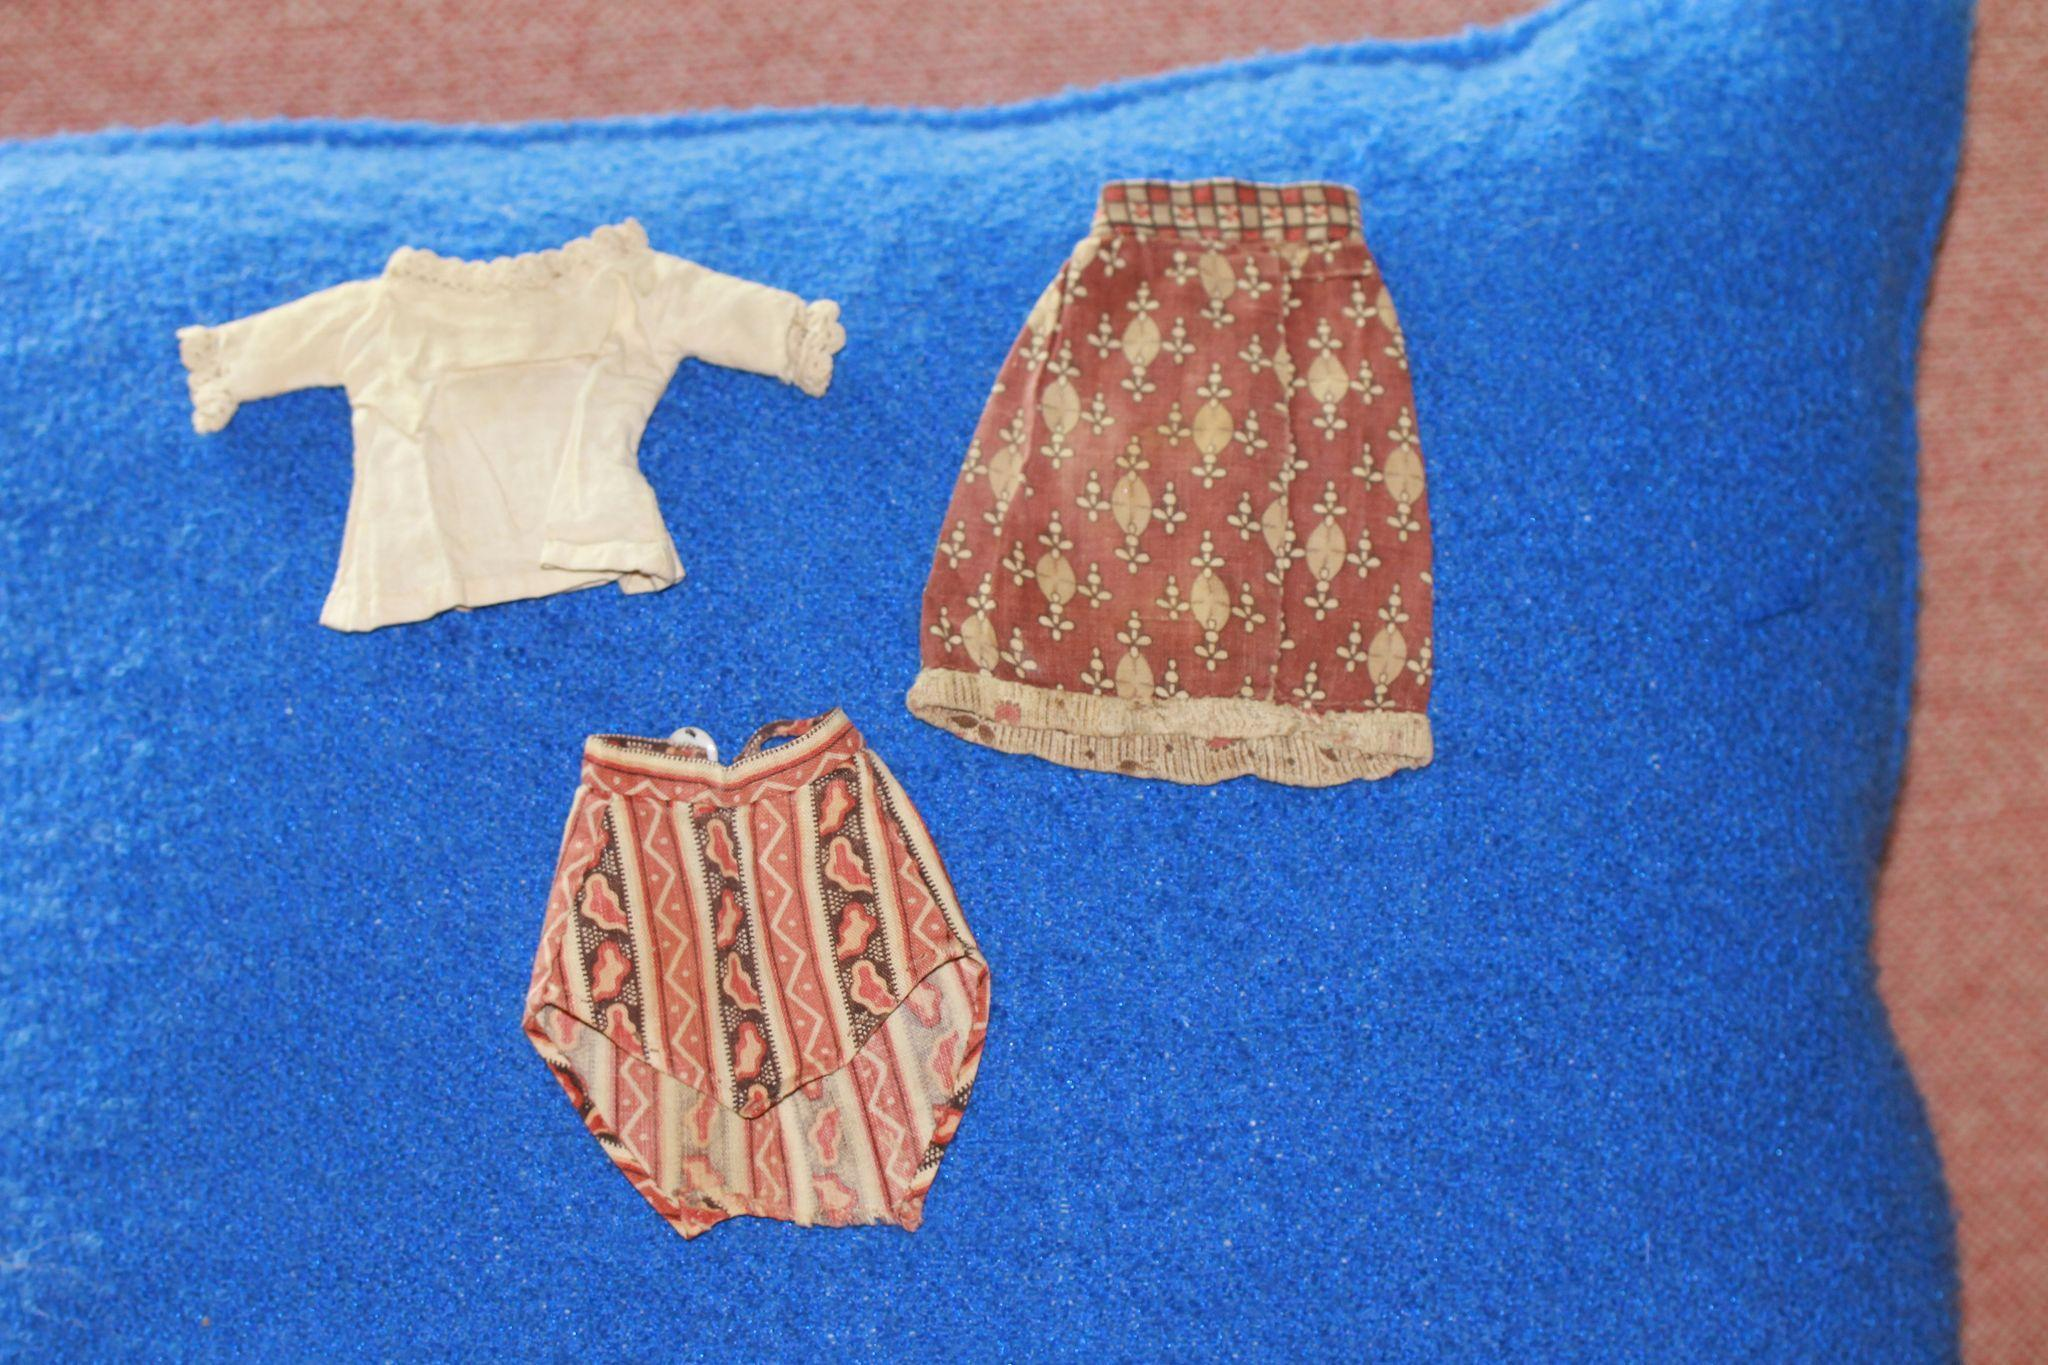 EARLY Antique Calico Skirt, Overskirt, Blouse for Smaller China Doll